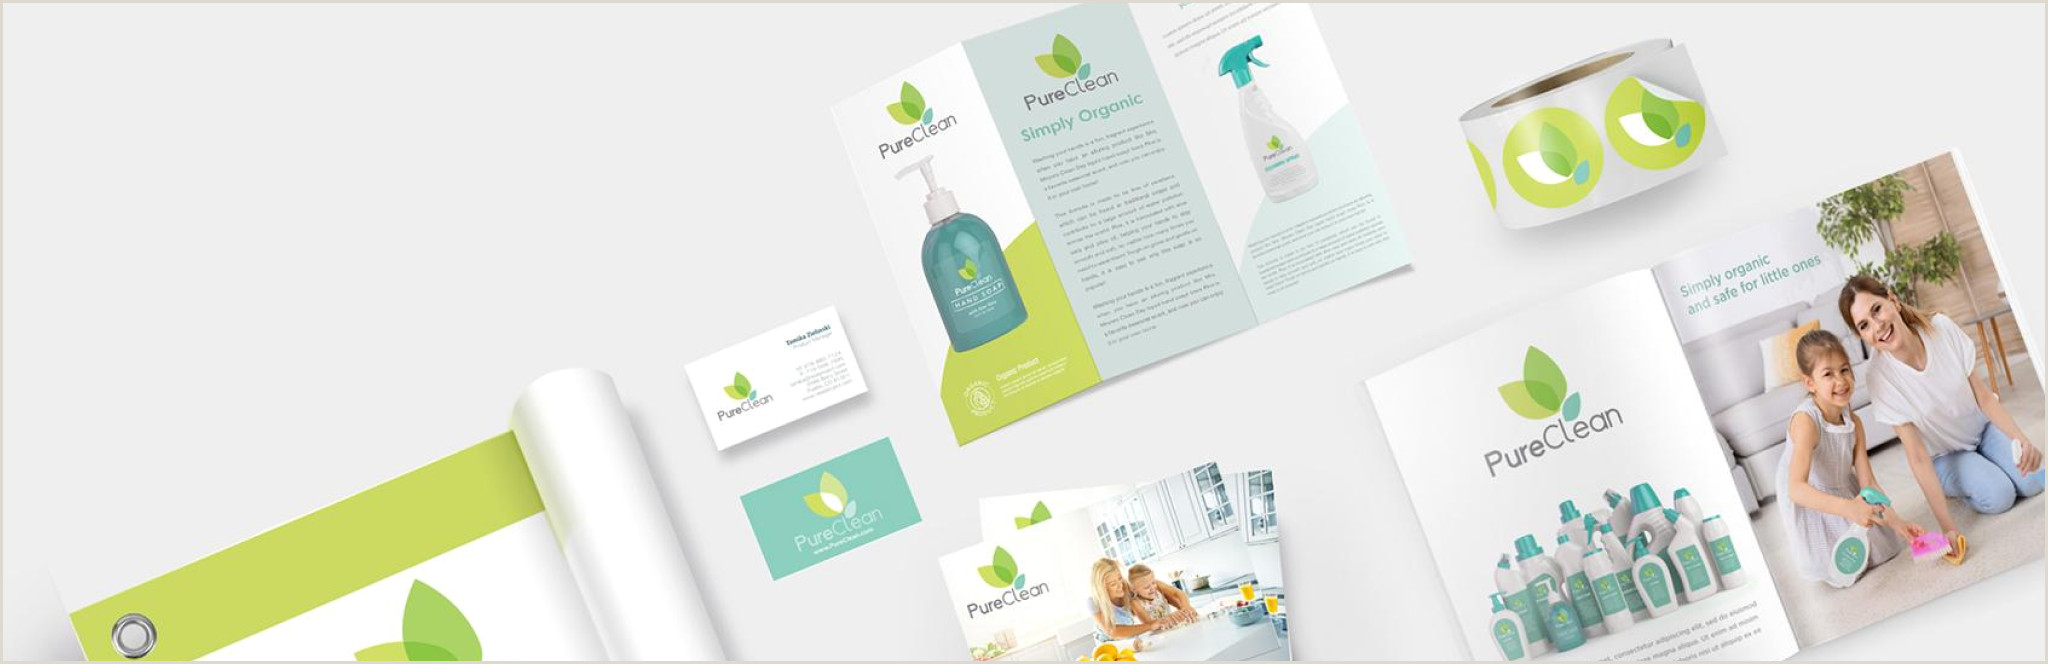 Call Card Designs Printplace High Quality Line Printing Services